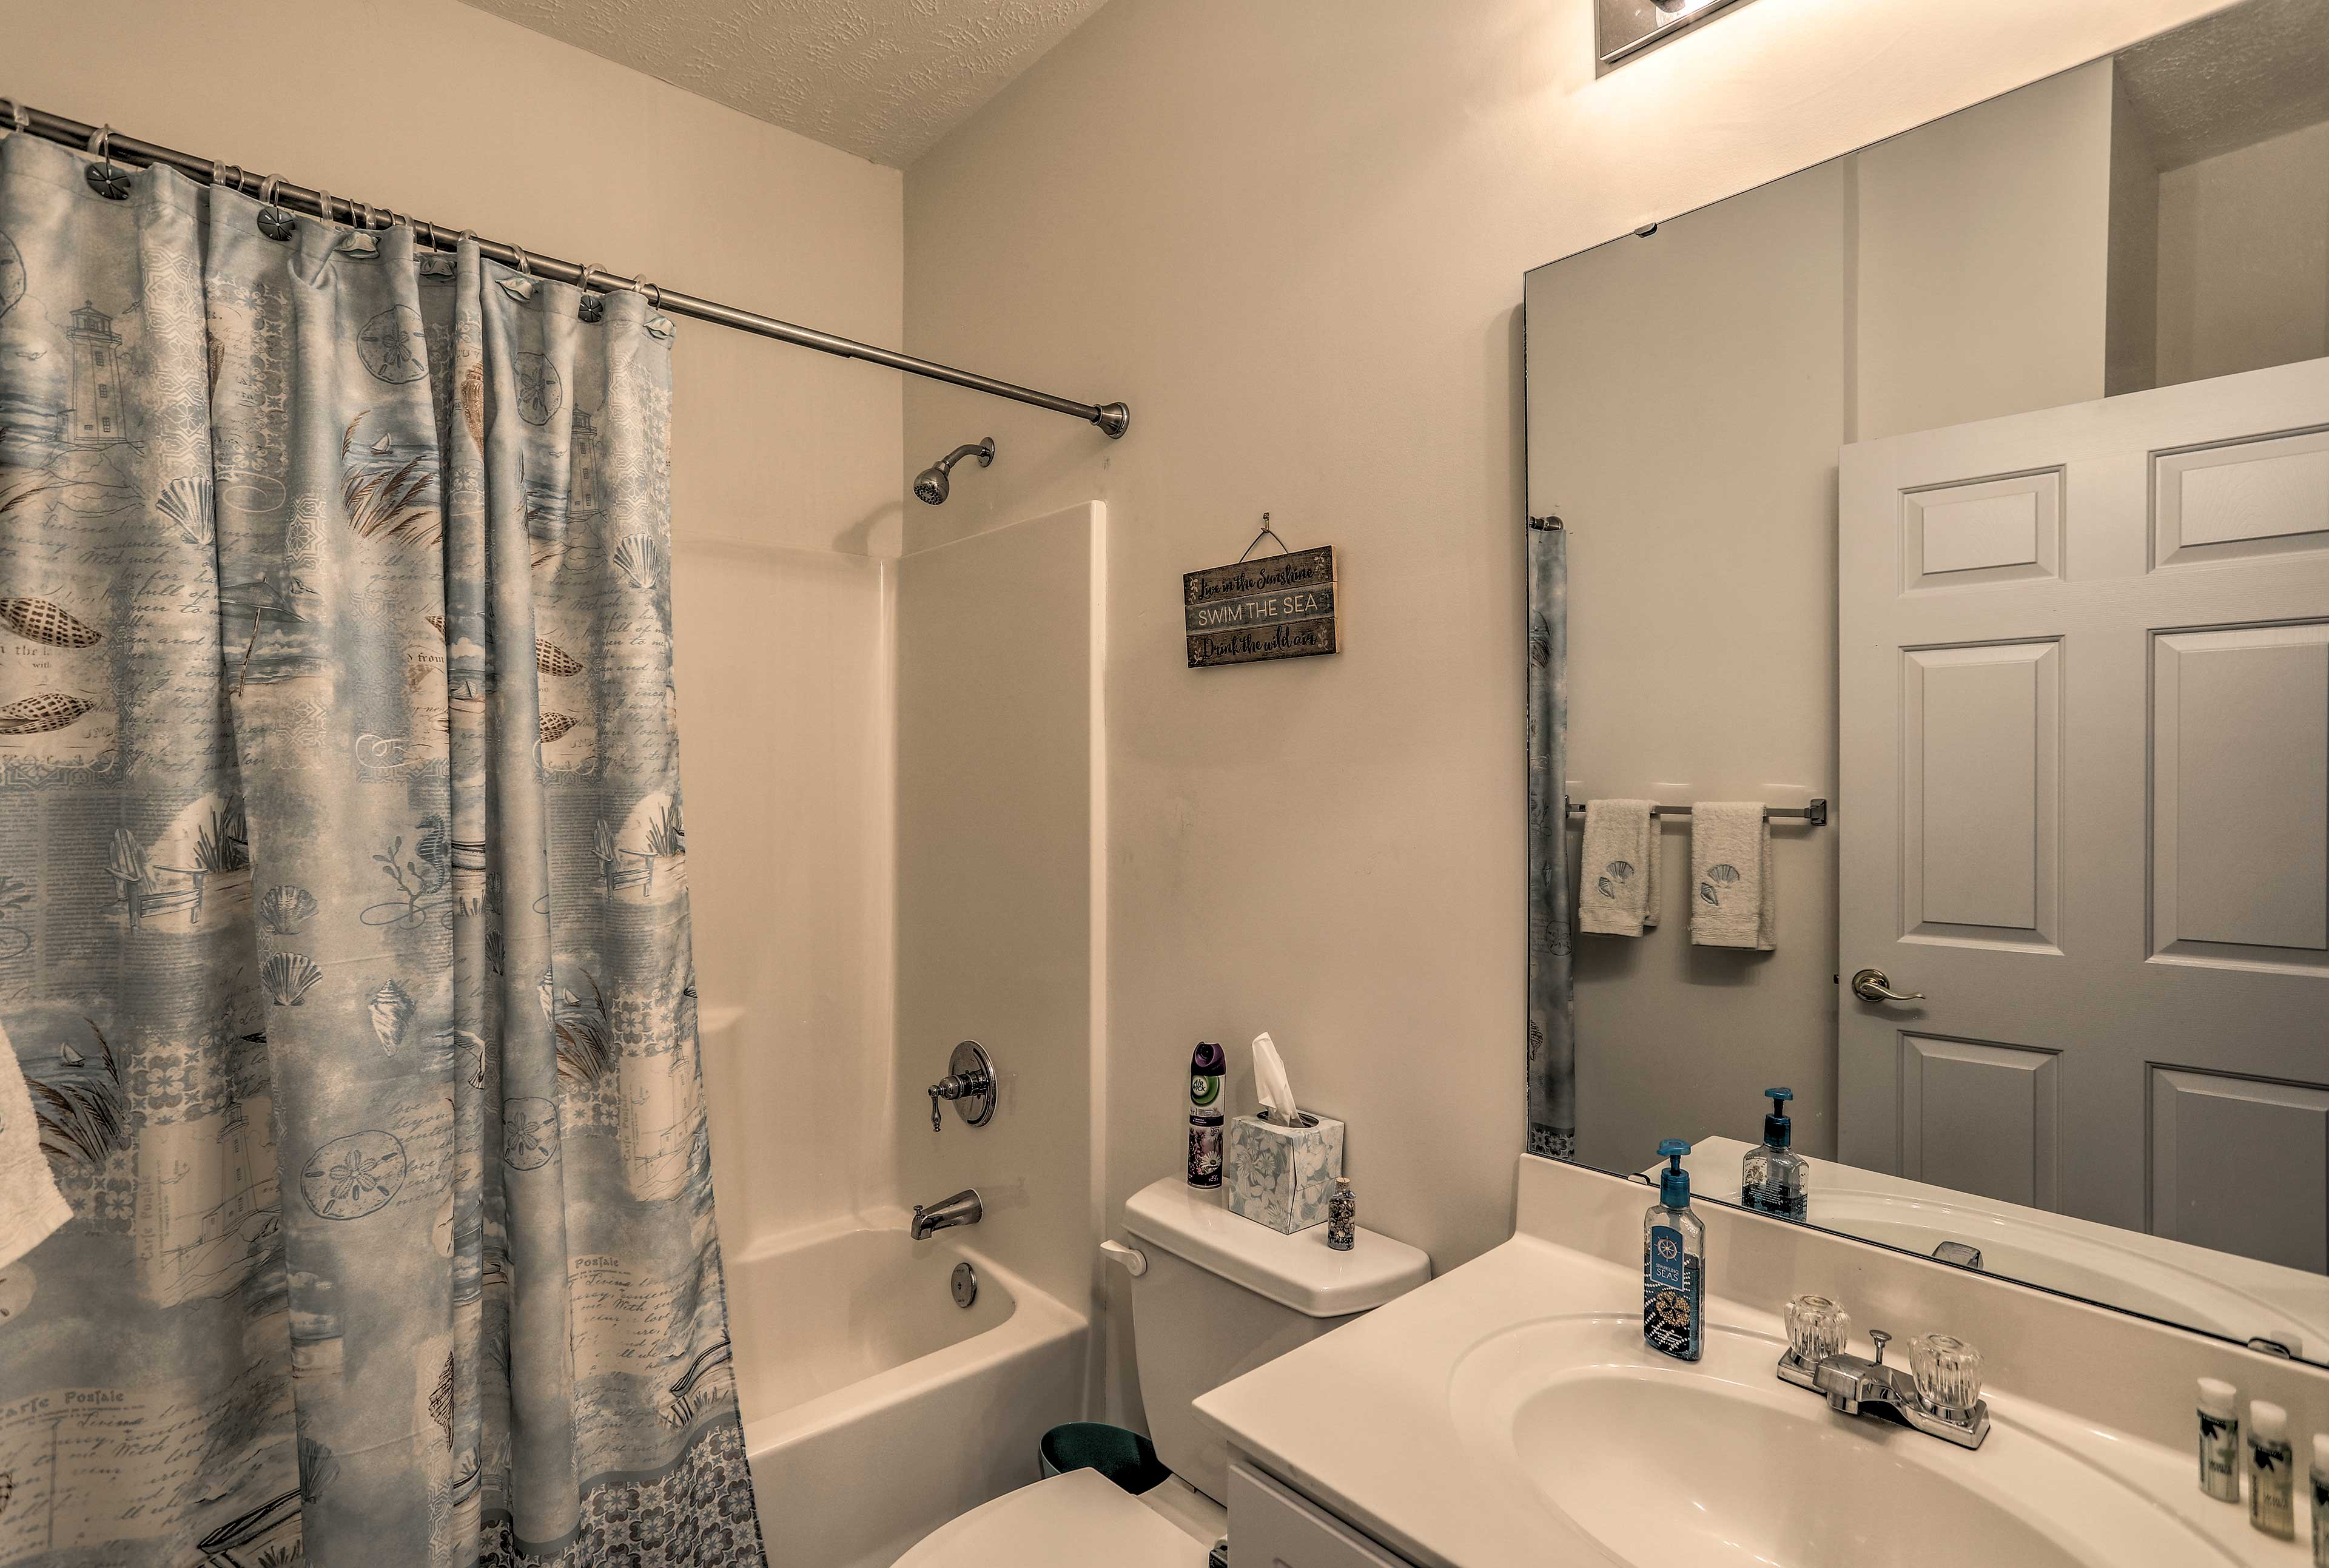 Rinse off the salt and sand in this shower/tub combo.